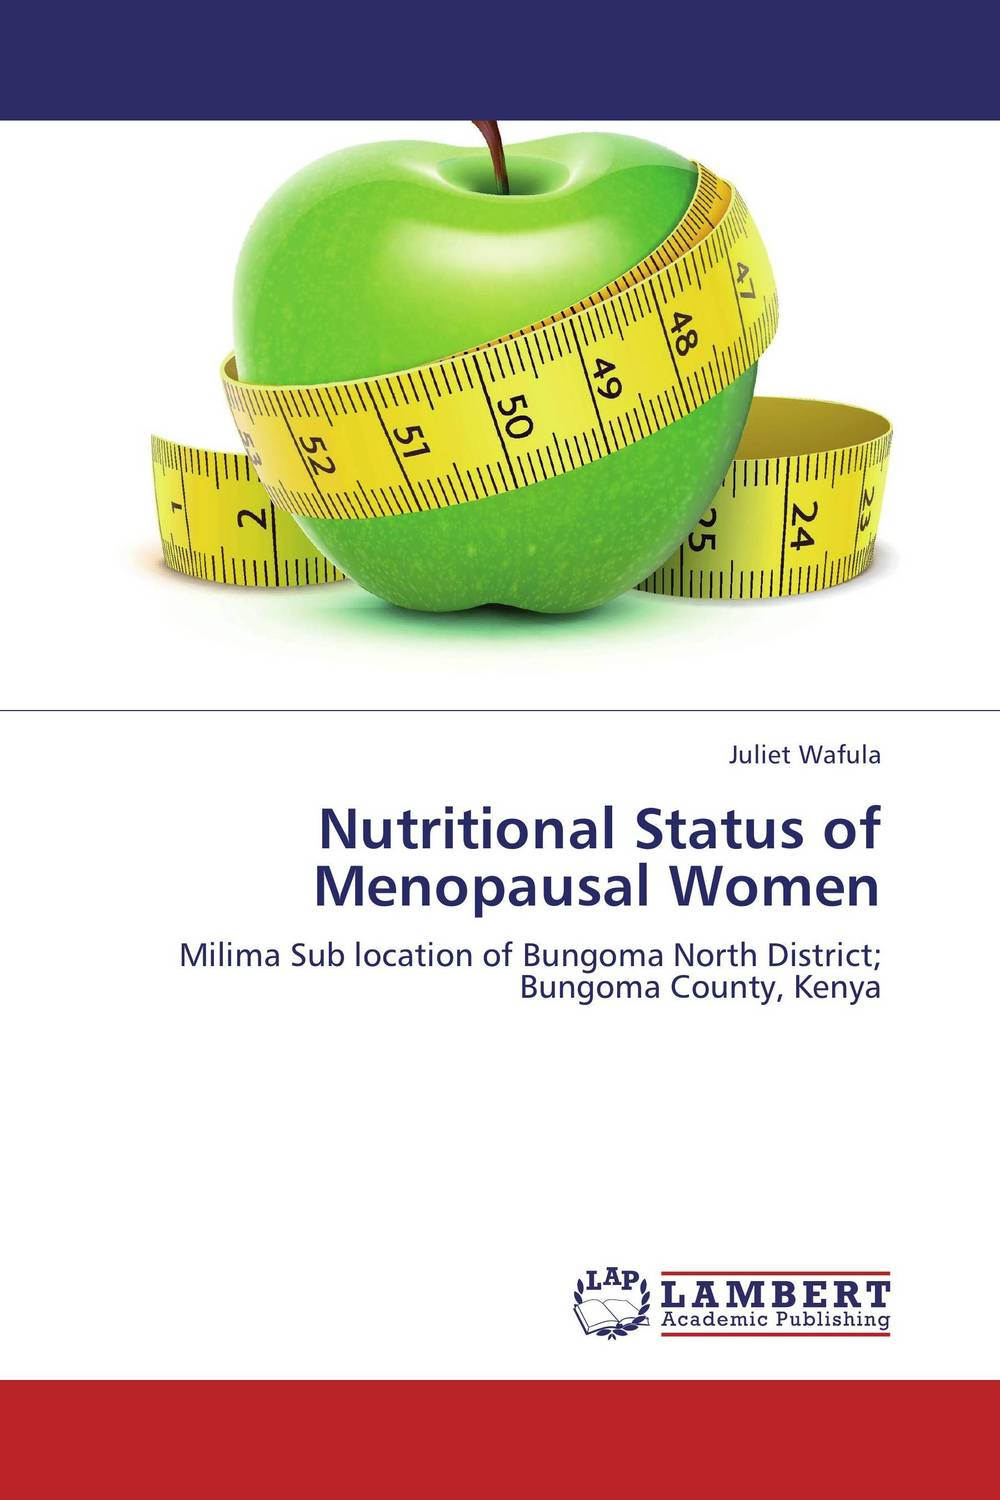 Nutritional Status of Menopausal Women